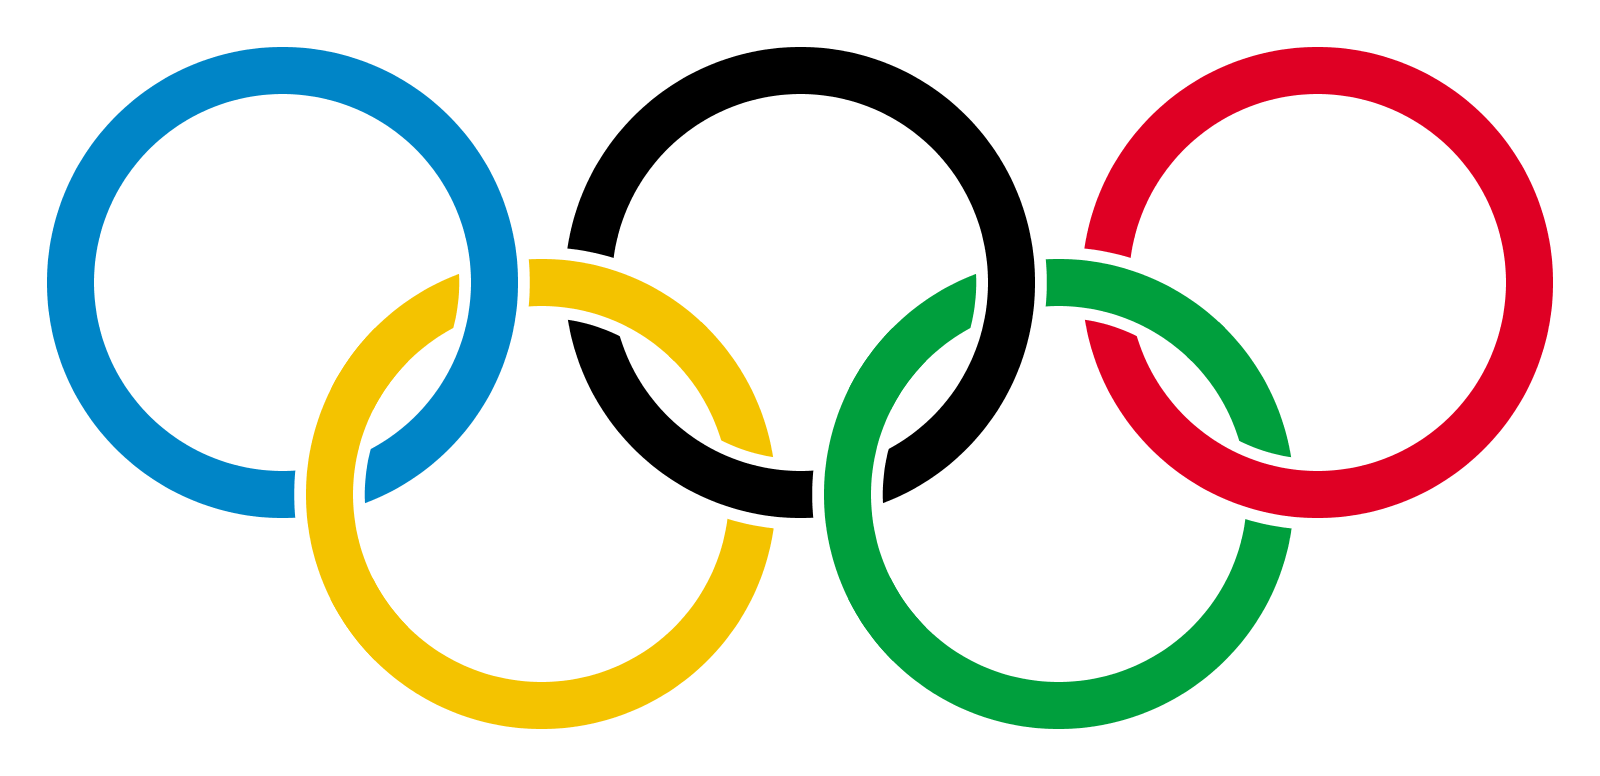 The olympic ring symbol (blue, black and red on top, yellow and green on the bottom)